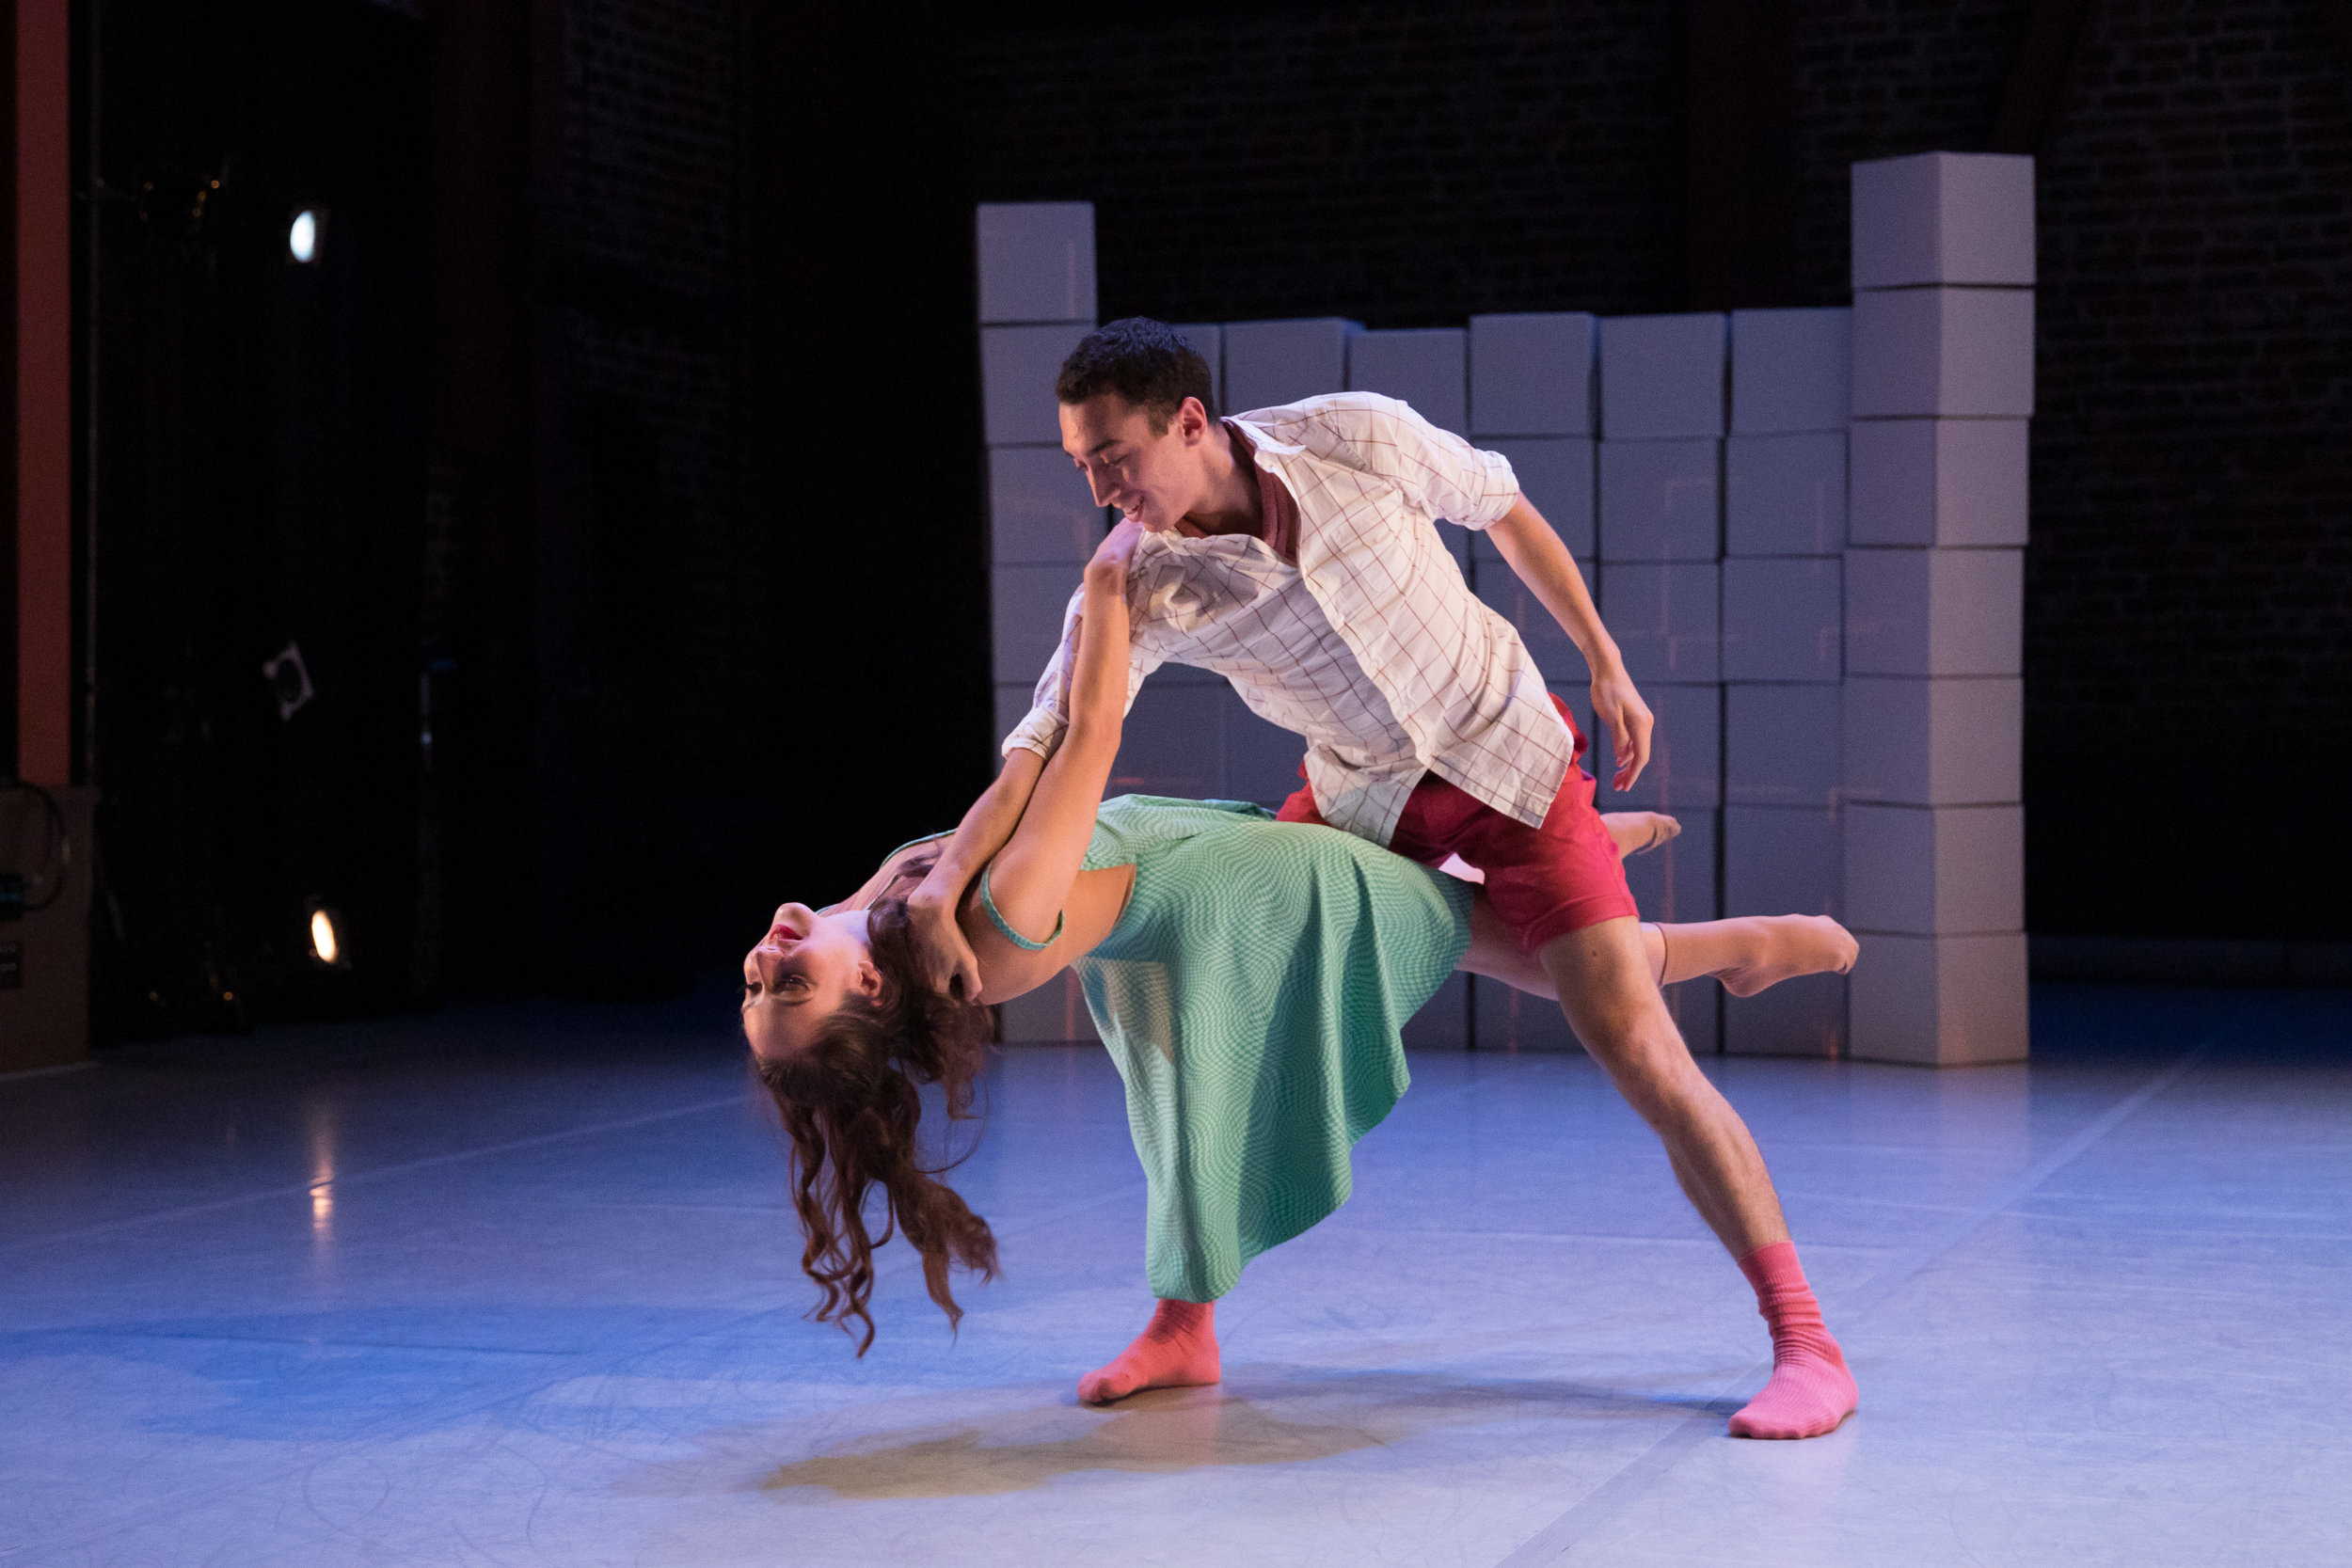 _H3_9615_Amy Seiwert's Imagery Artists Isaac Bates-Vinueza and Shania Rasmussen in All I Ever Knew by Ben Needham-Wood_ Photo by Chris Hardy.jpg